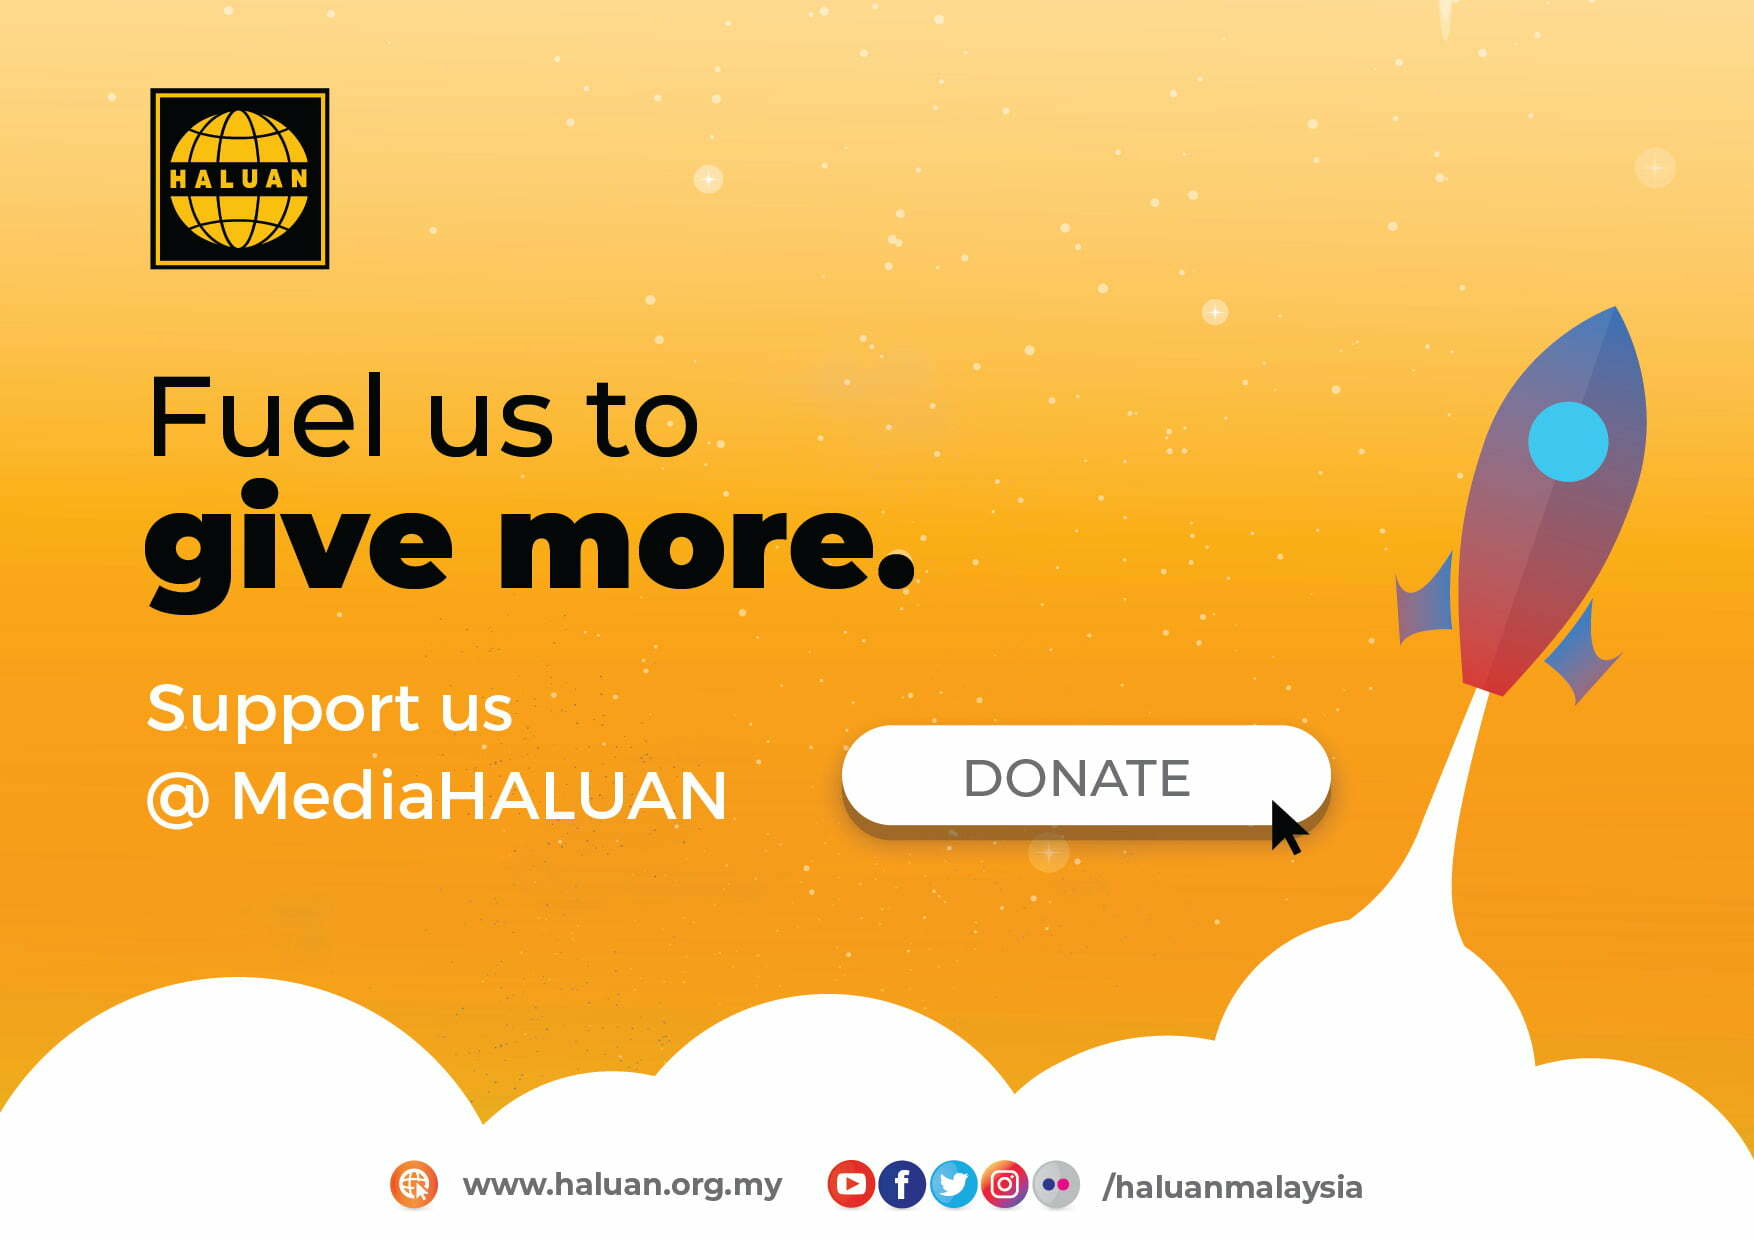 Support Us @mediaHALUAN